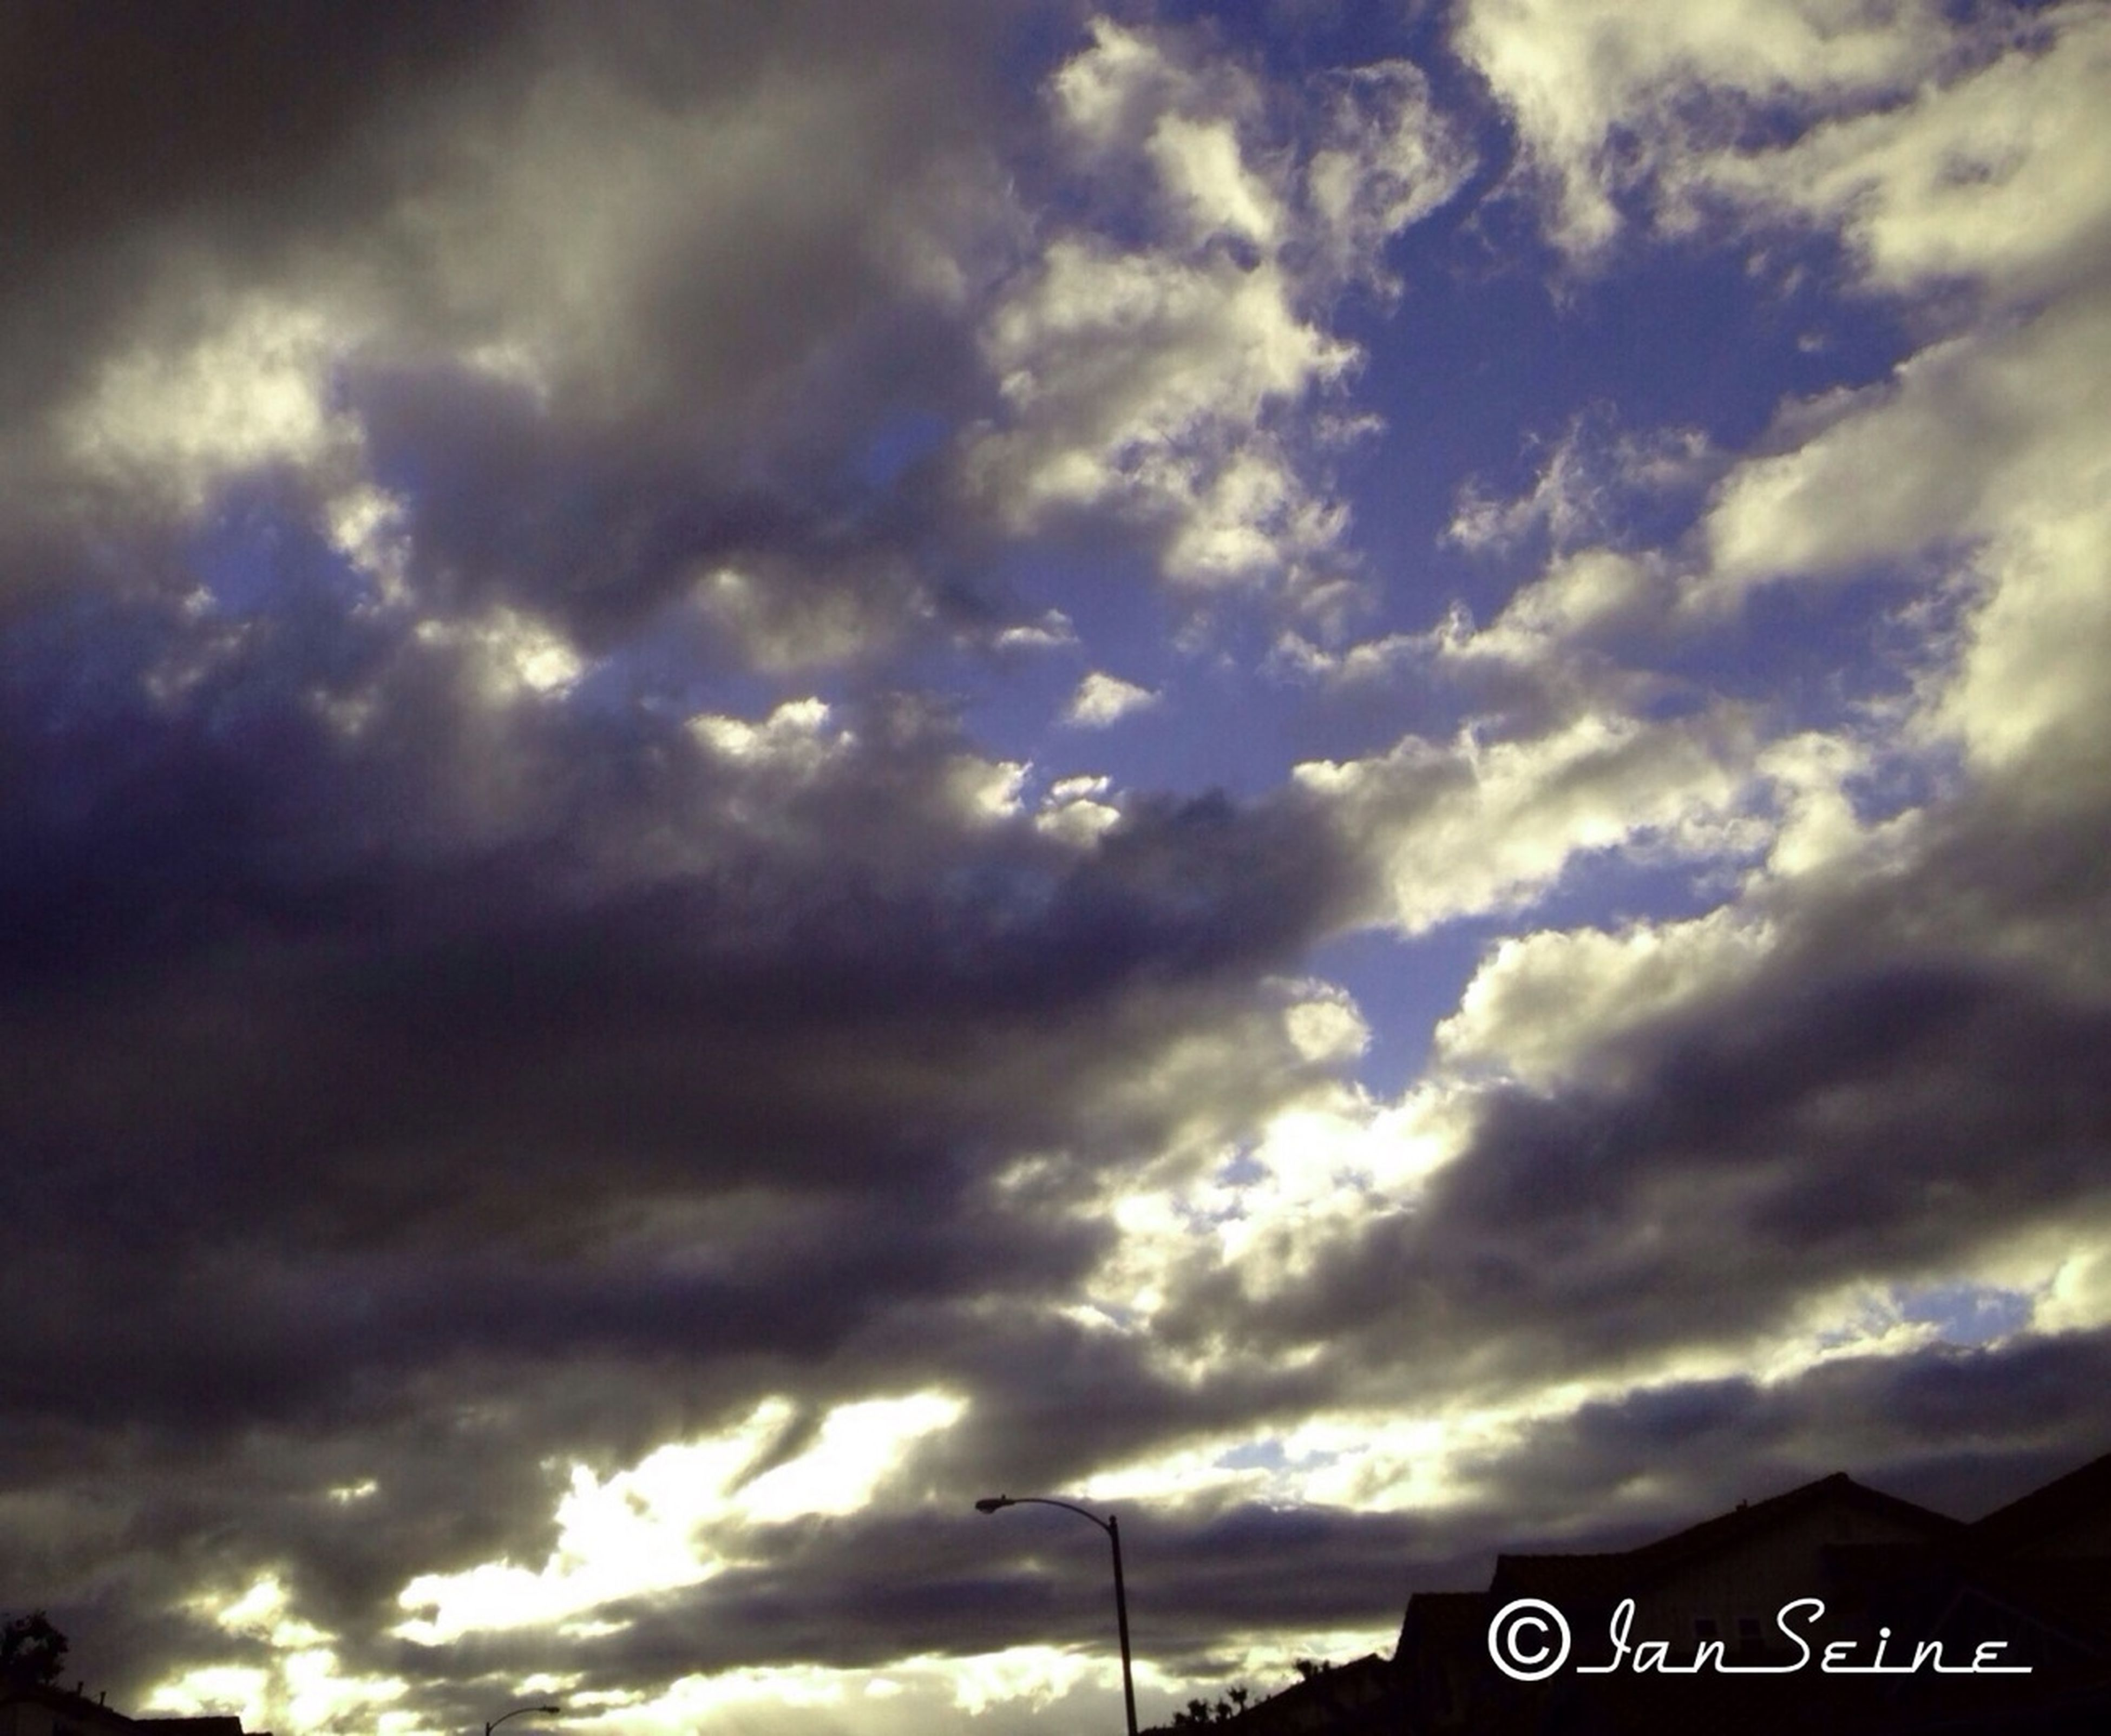 sky, cloud - sky, communication, text, cloudy, low angle view, western script, cloud, information sign, sunset, sign, road sign, weather, cloudscape, nature, tranquility, overcast, scenics, guidance, capital letter